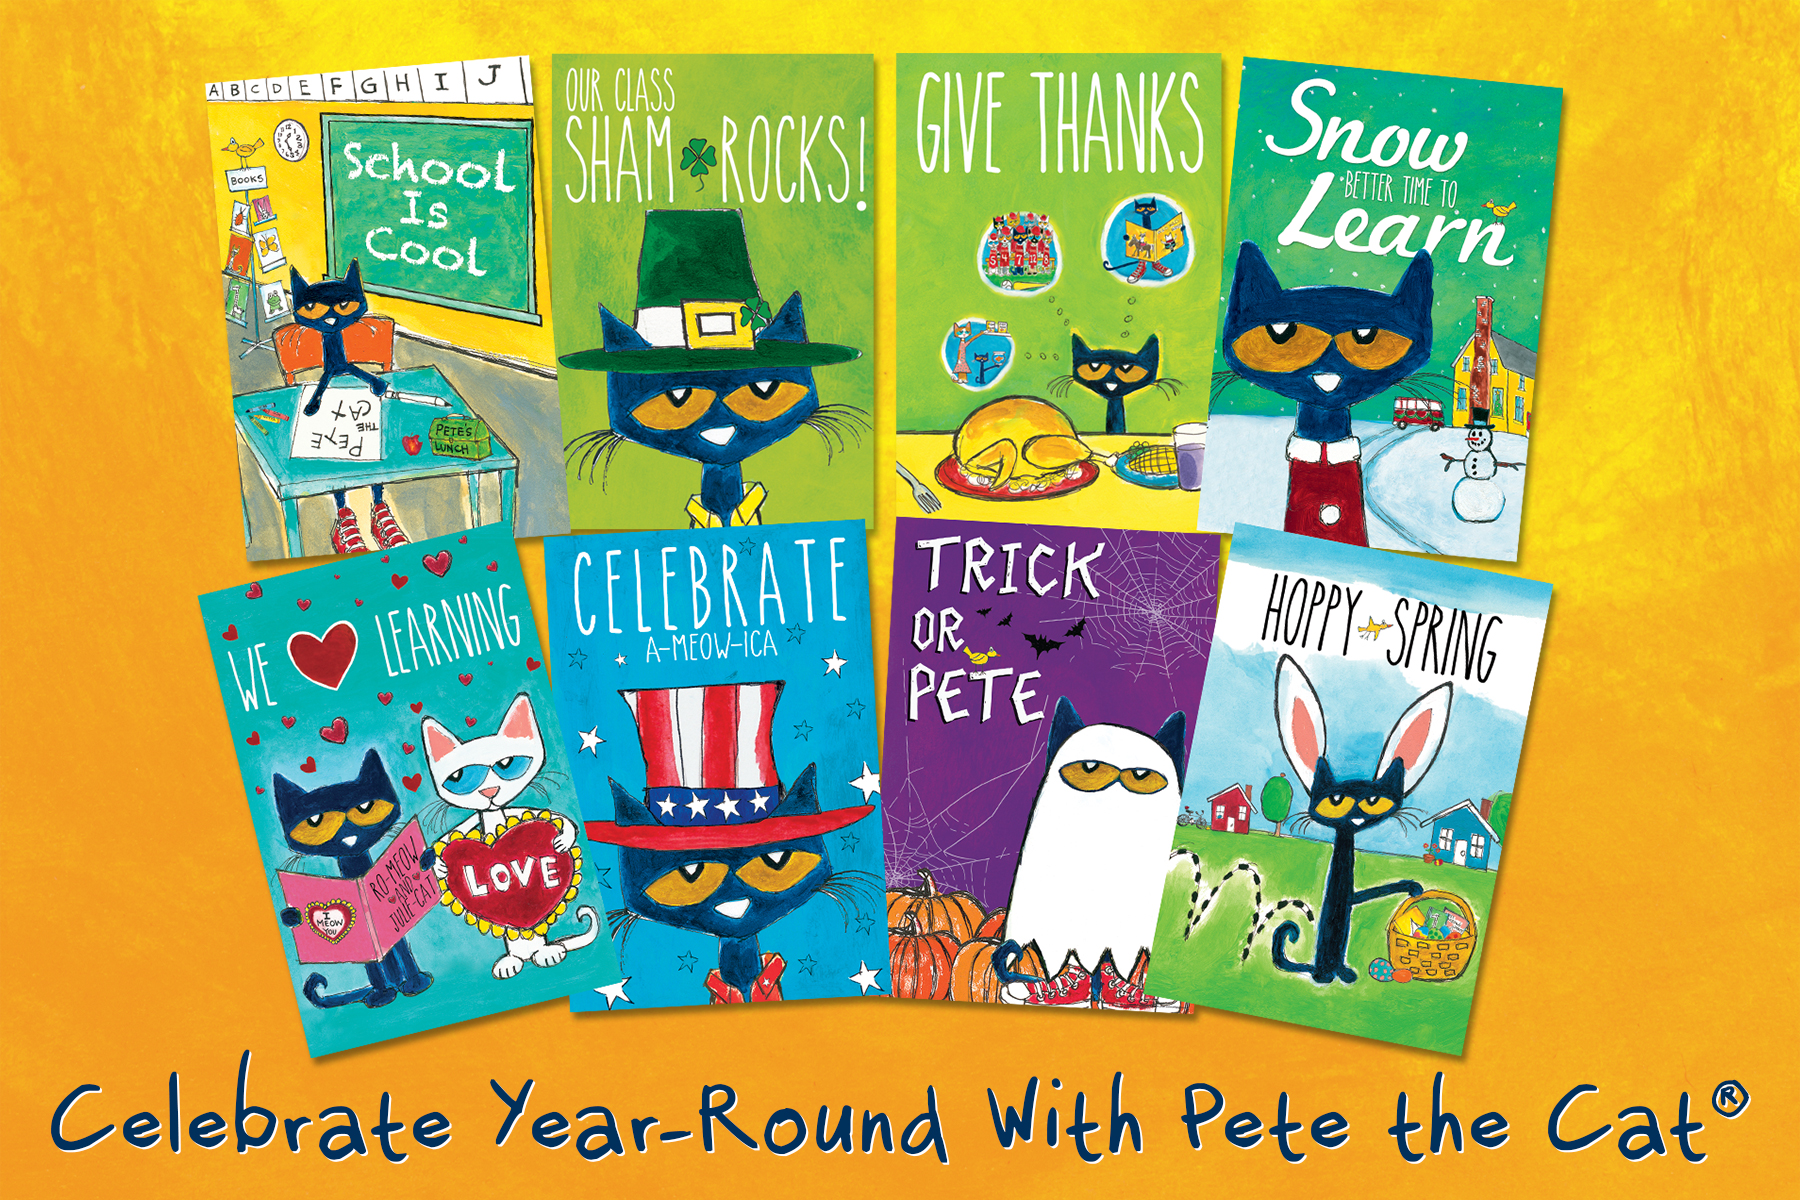 Celebrate With Pete the Cat Activity Guide!